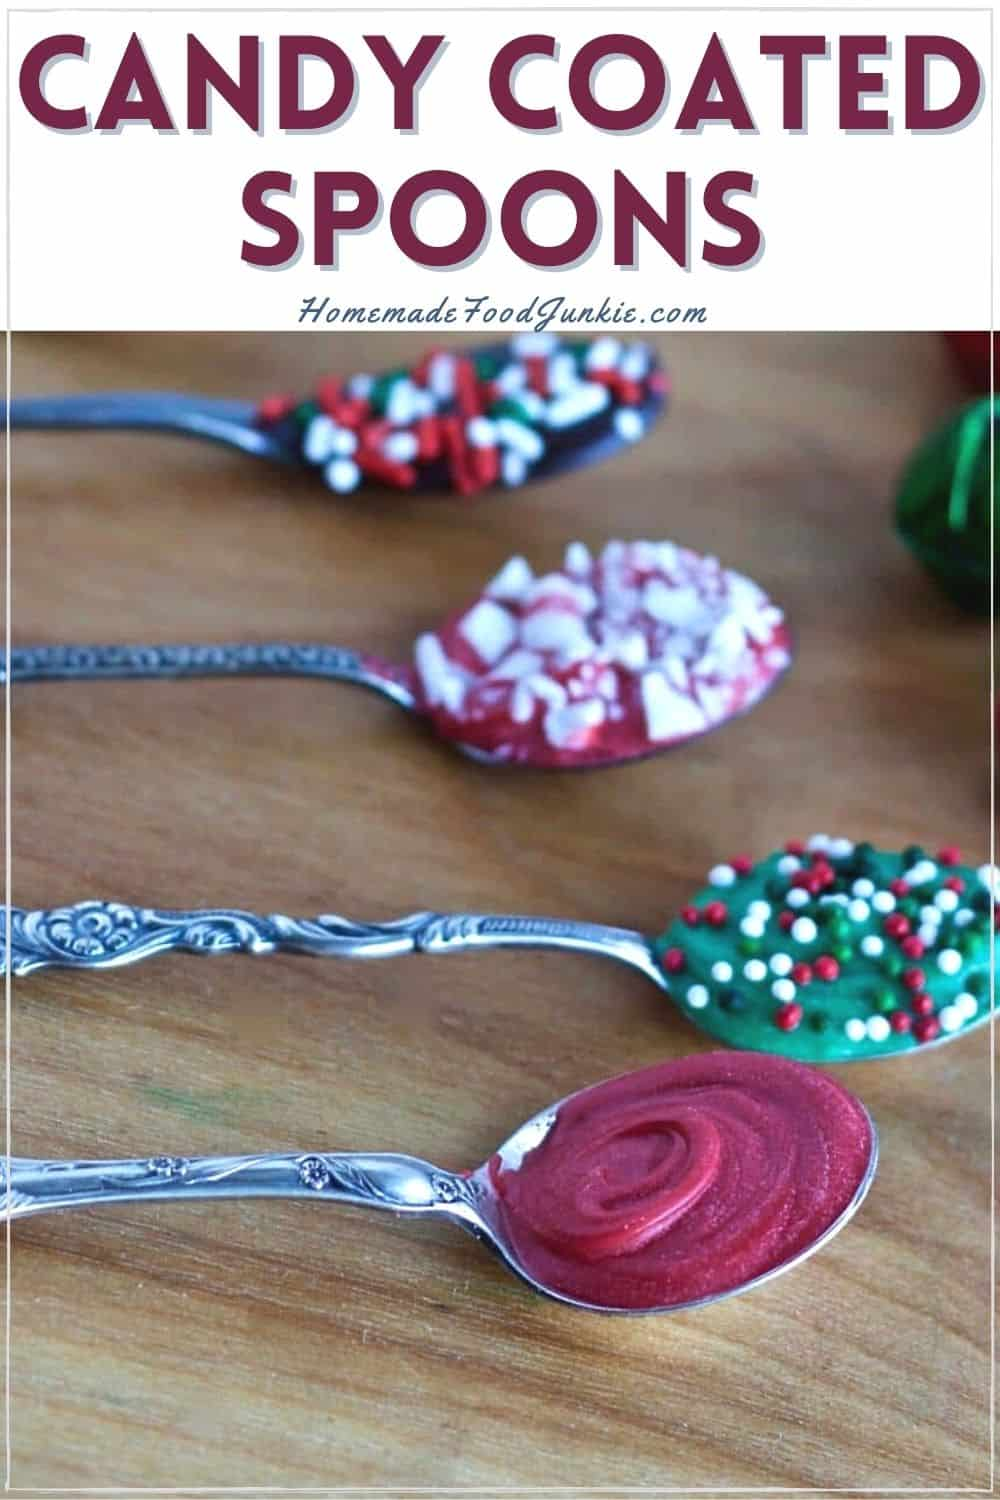 Candy coated spoons-pin image